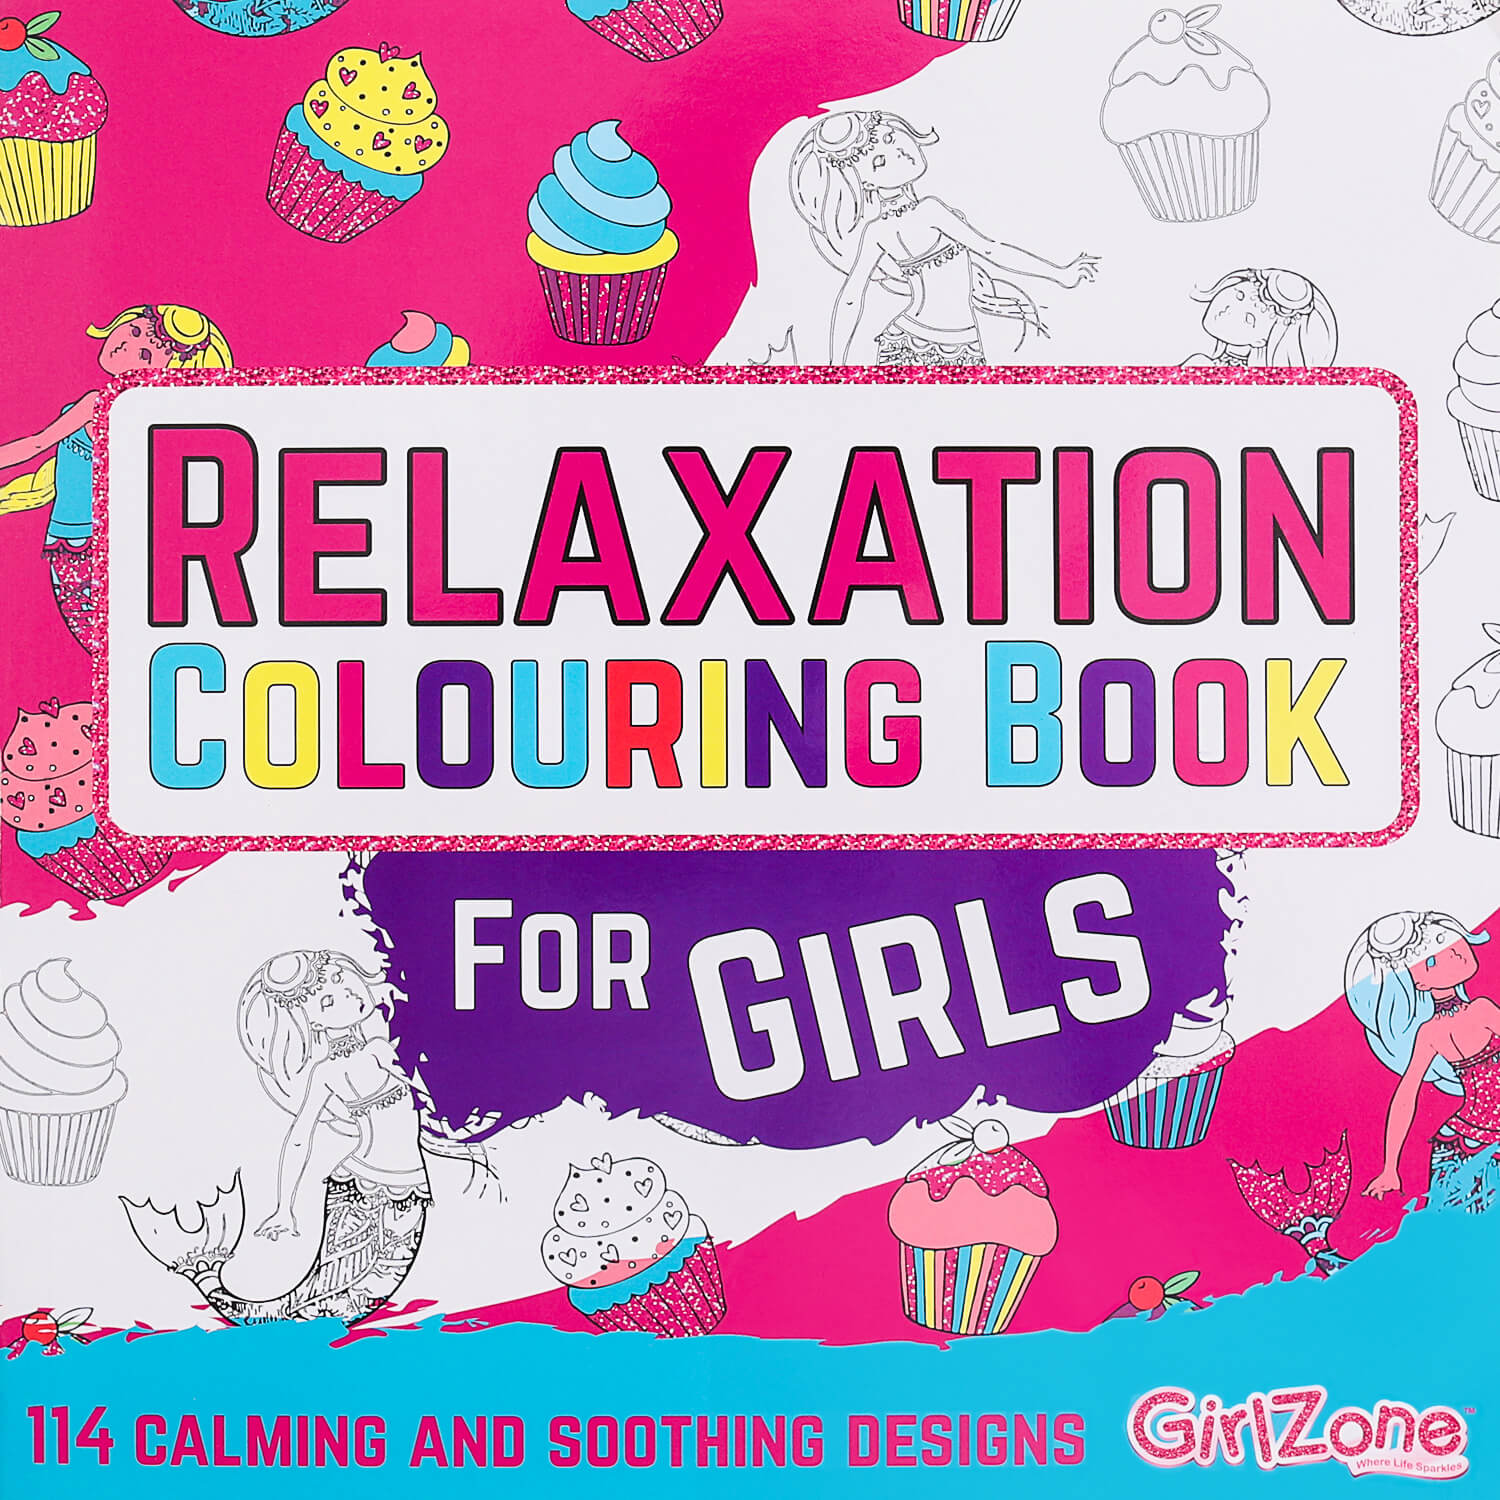 Colouring book for girls, Colouring book for kids